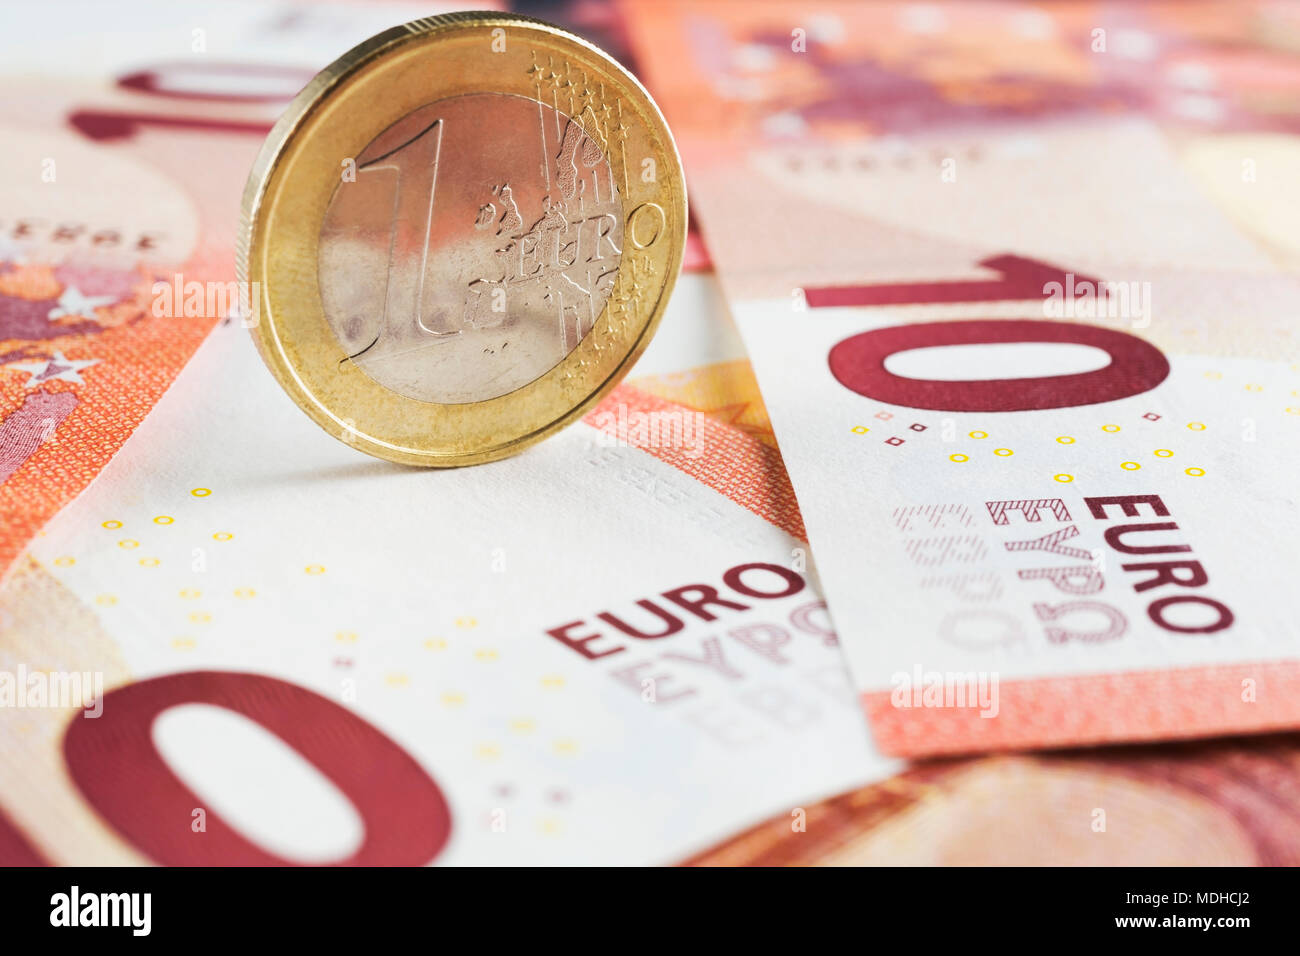 Upright one Euro coin on top of ten Euros denomination paper currency bank notes - Stock Image